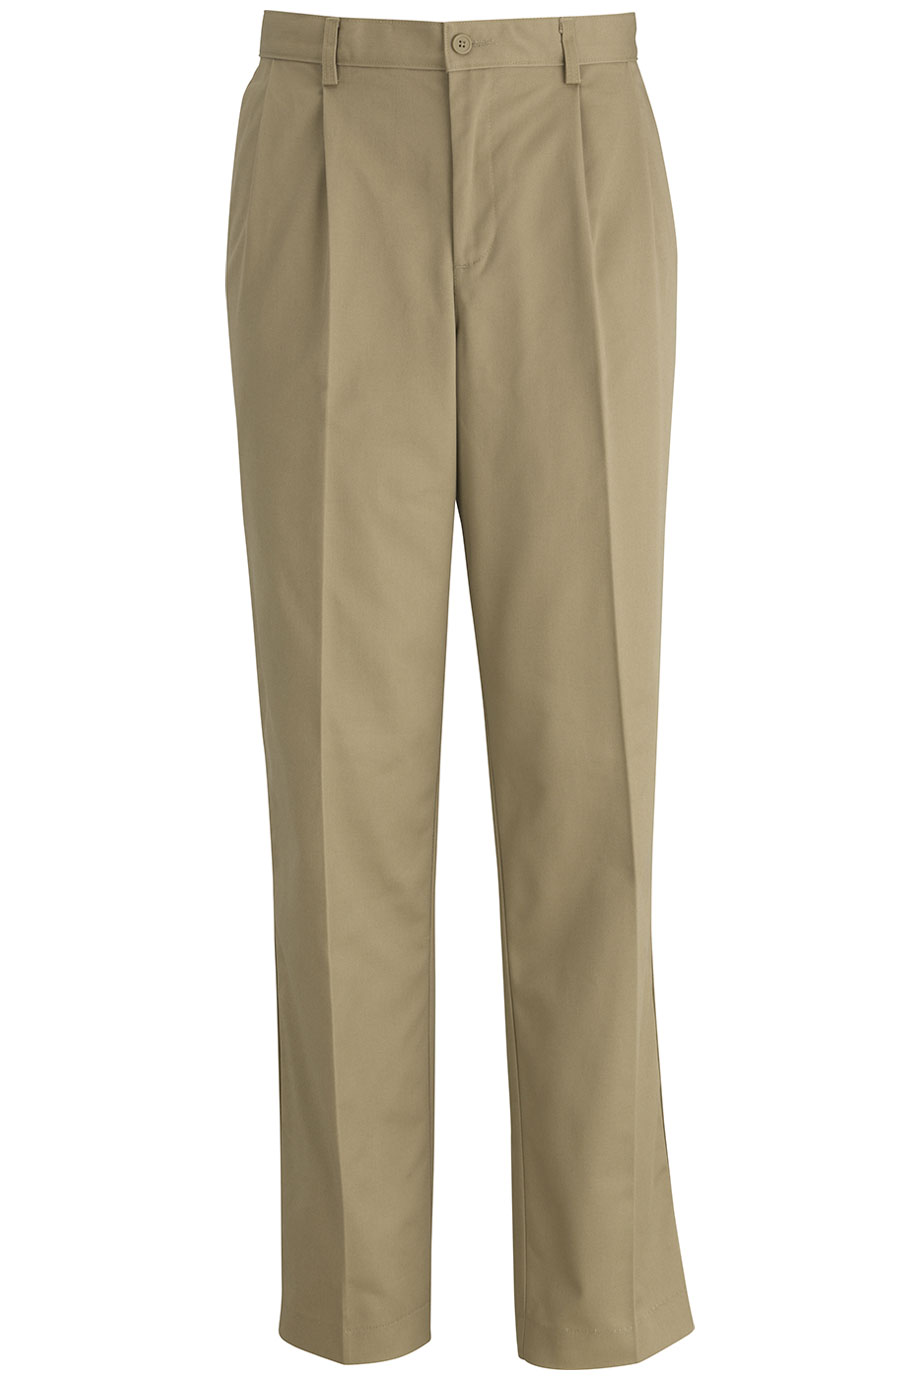 Utility Chino Pleated Front Pant